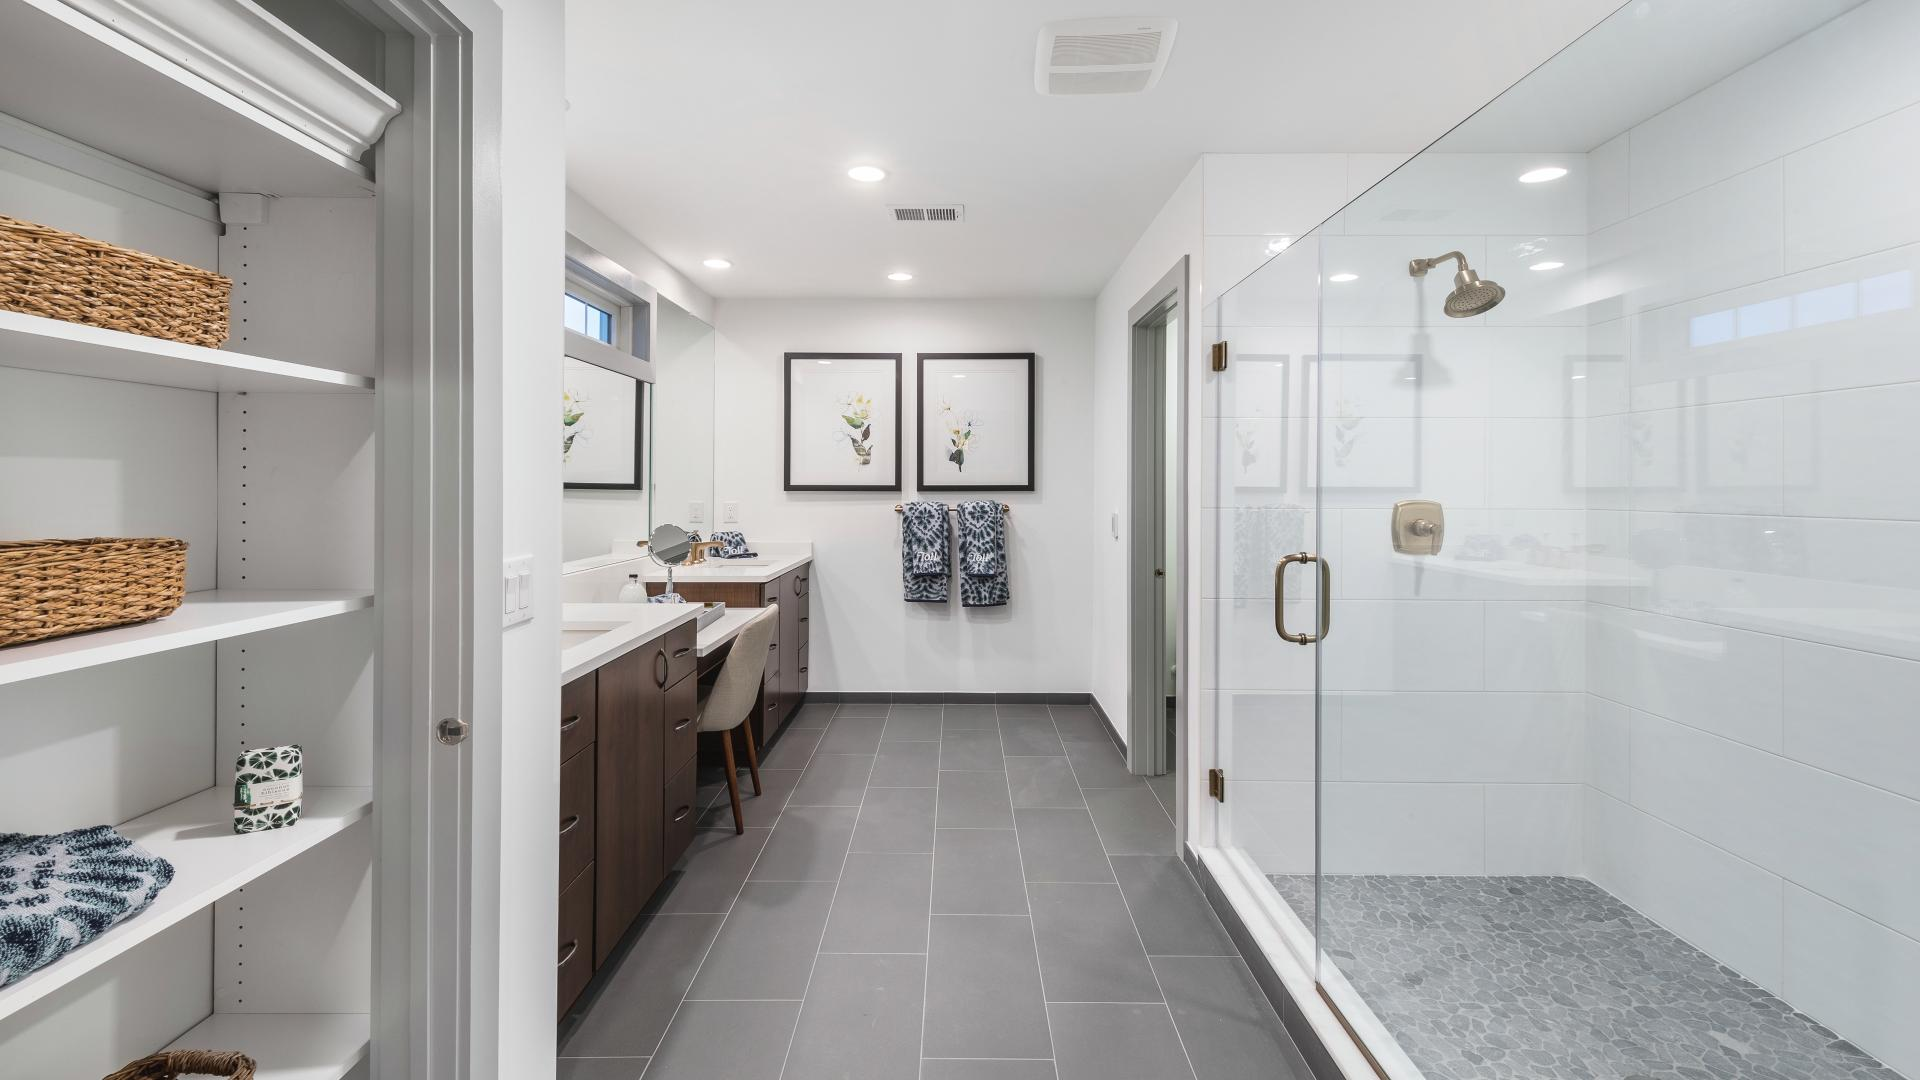 Photos are images only and should not be relied upon to confirm applicable features - Spacious primary bath